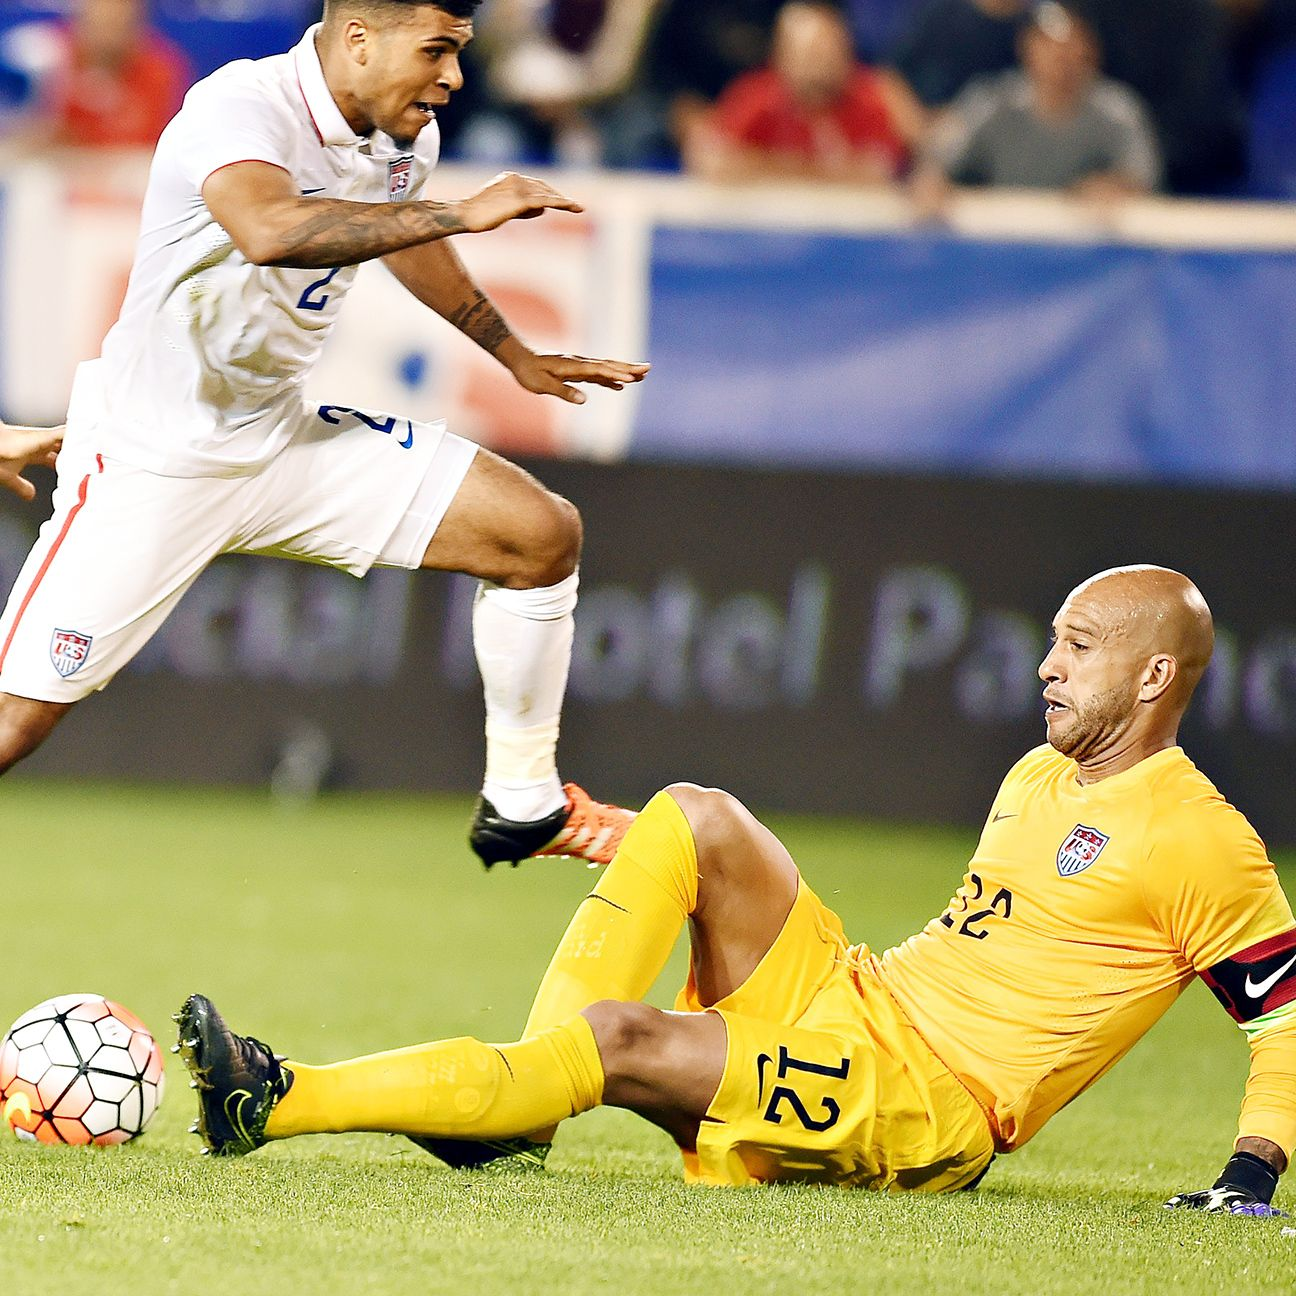 Tim Howard picked up where he left off with the national team in a stellar performance against Costa Rica.